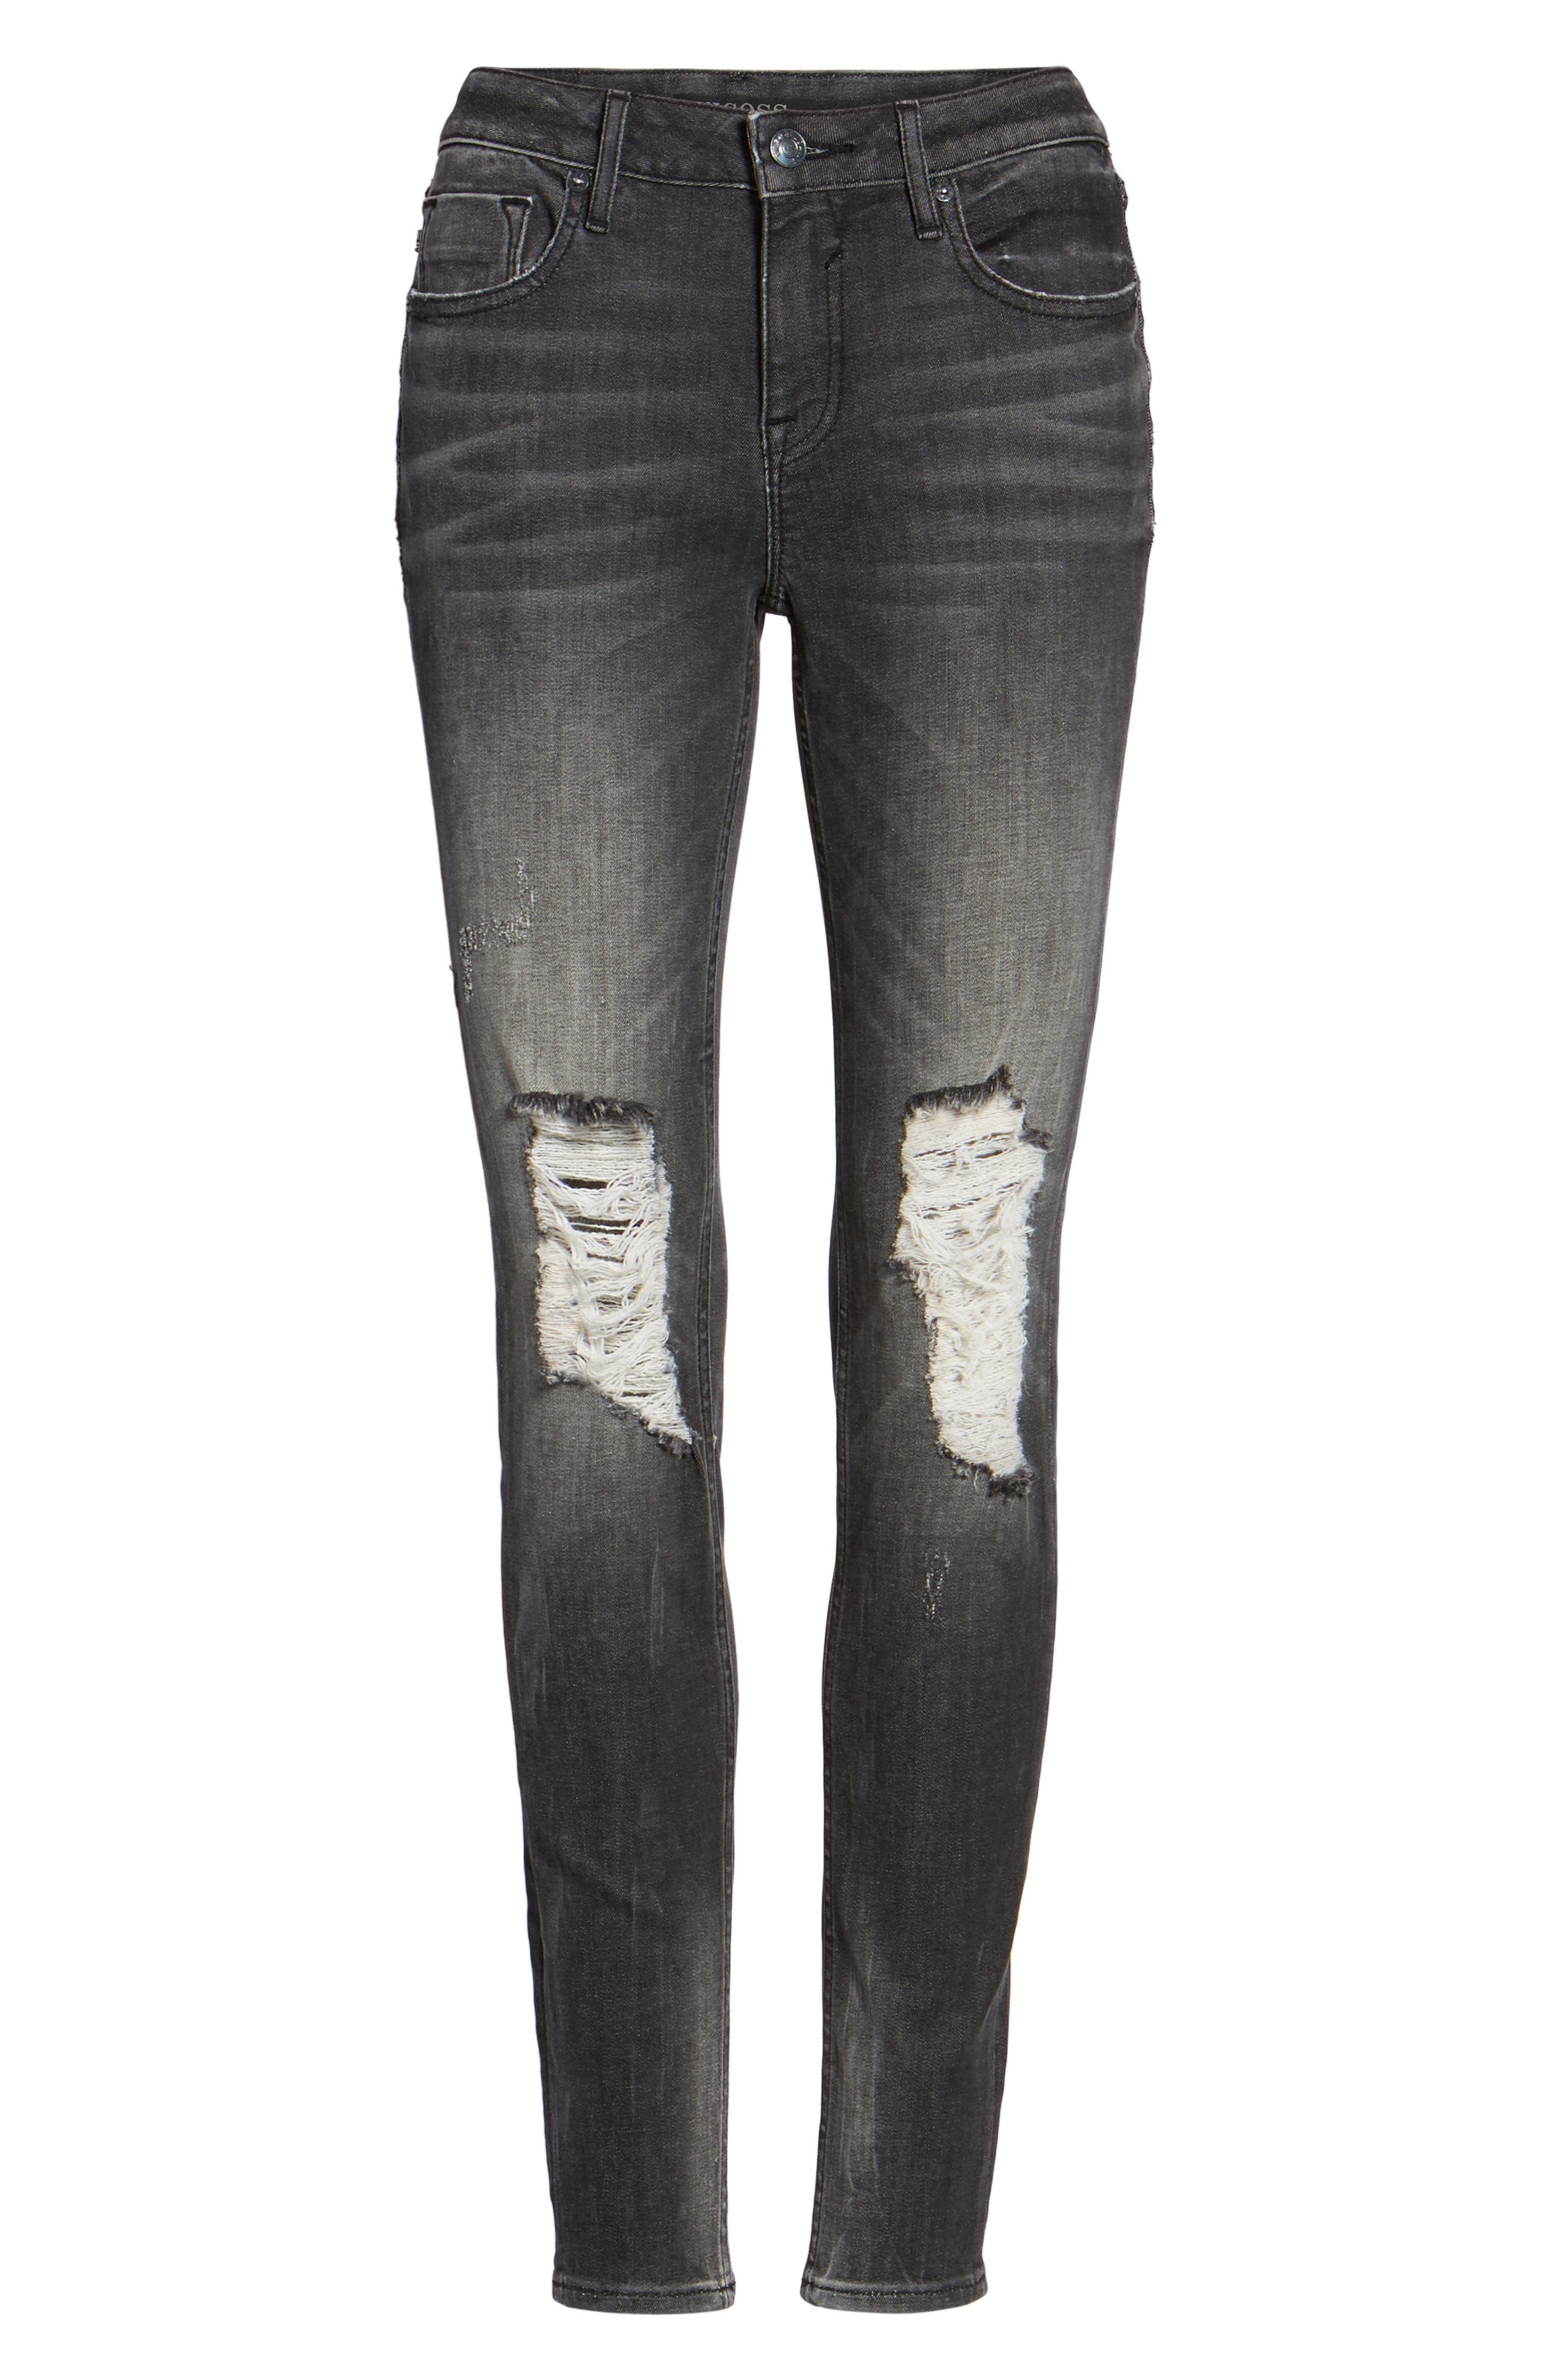 Jagger Ripped Skinny Jeans,                             Alternate thumbnail 6, color,                             020